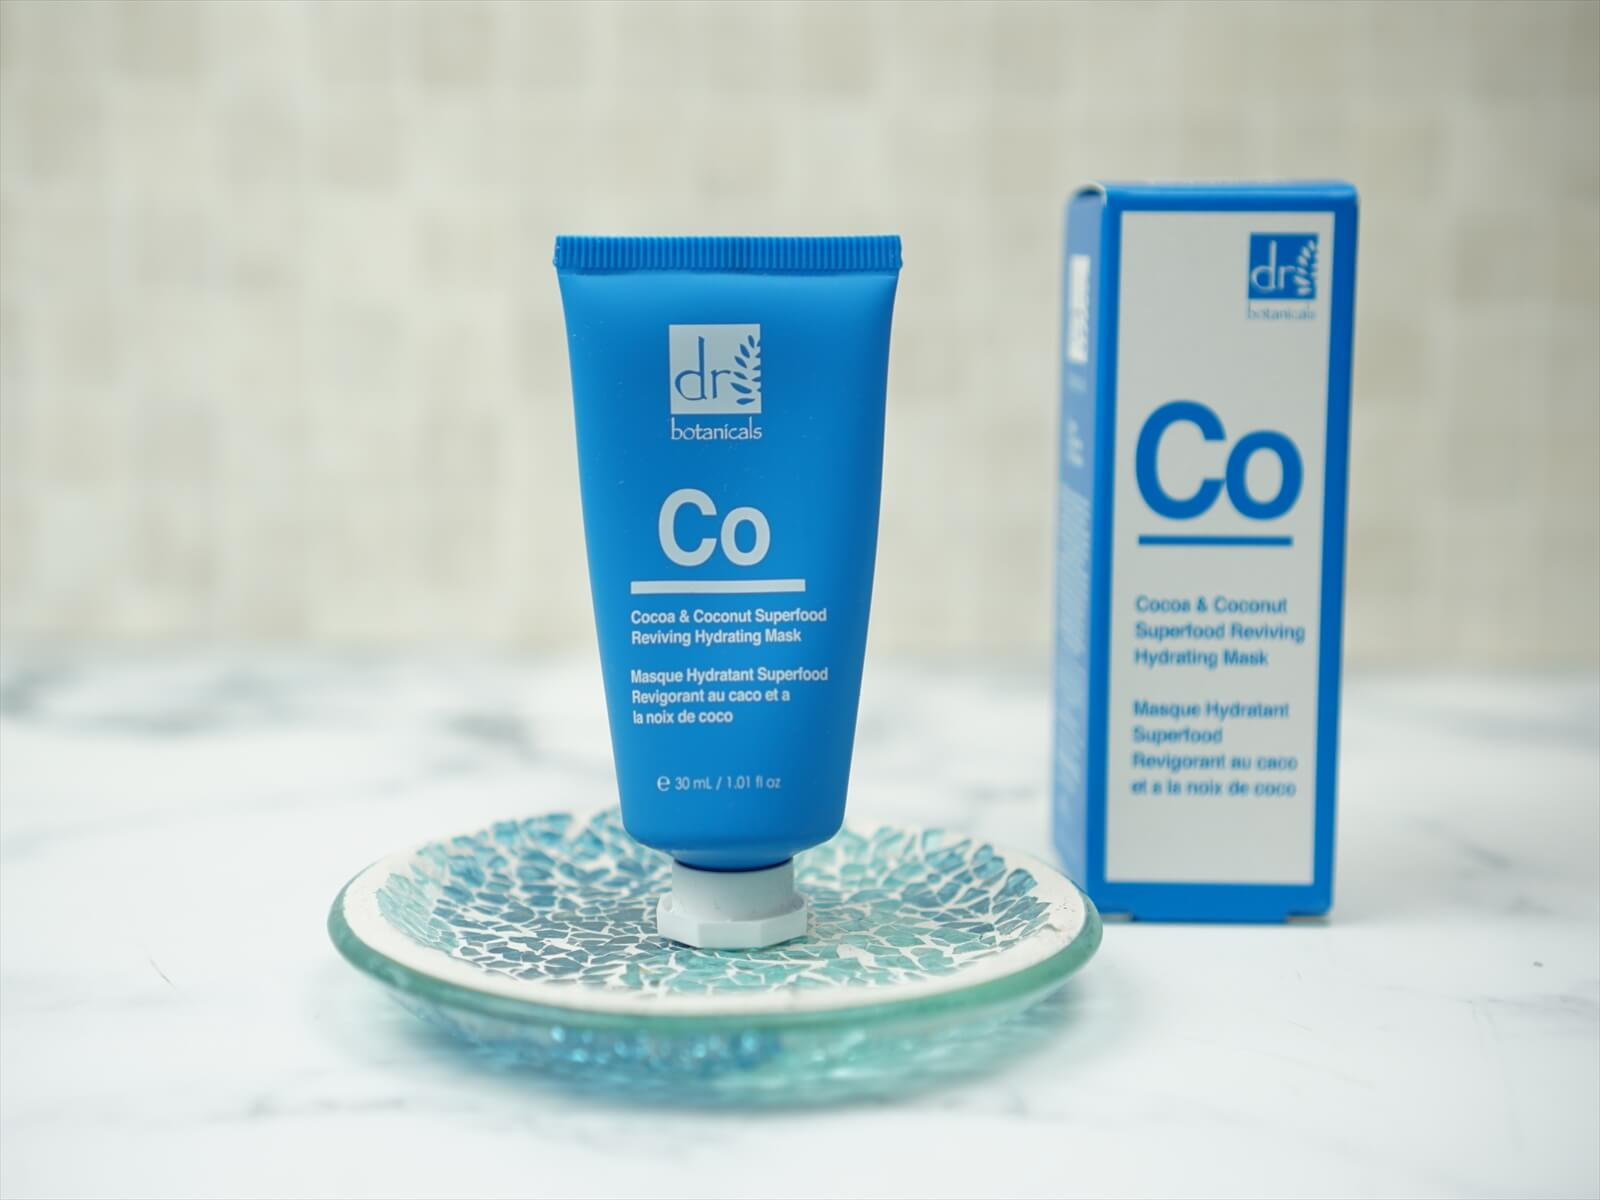 Dr.botanicals Cocoa & Coconut Superfood Reviving Hydrating Mask 30ml